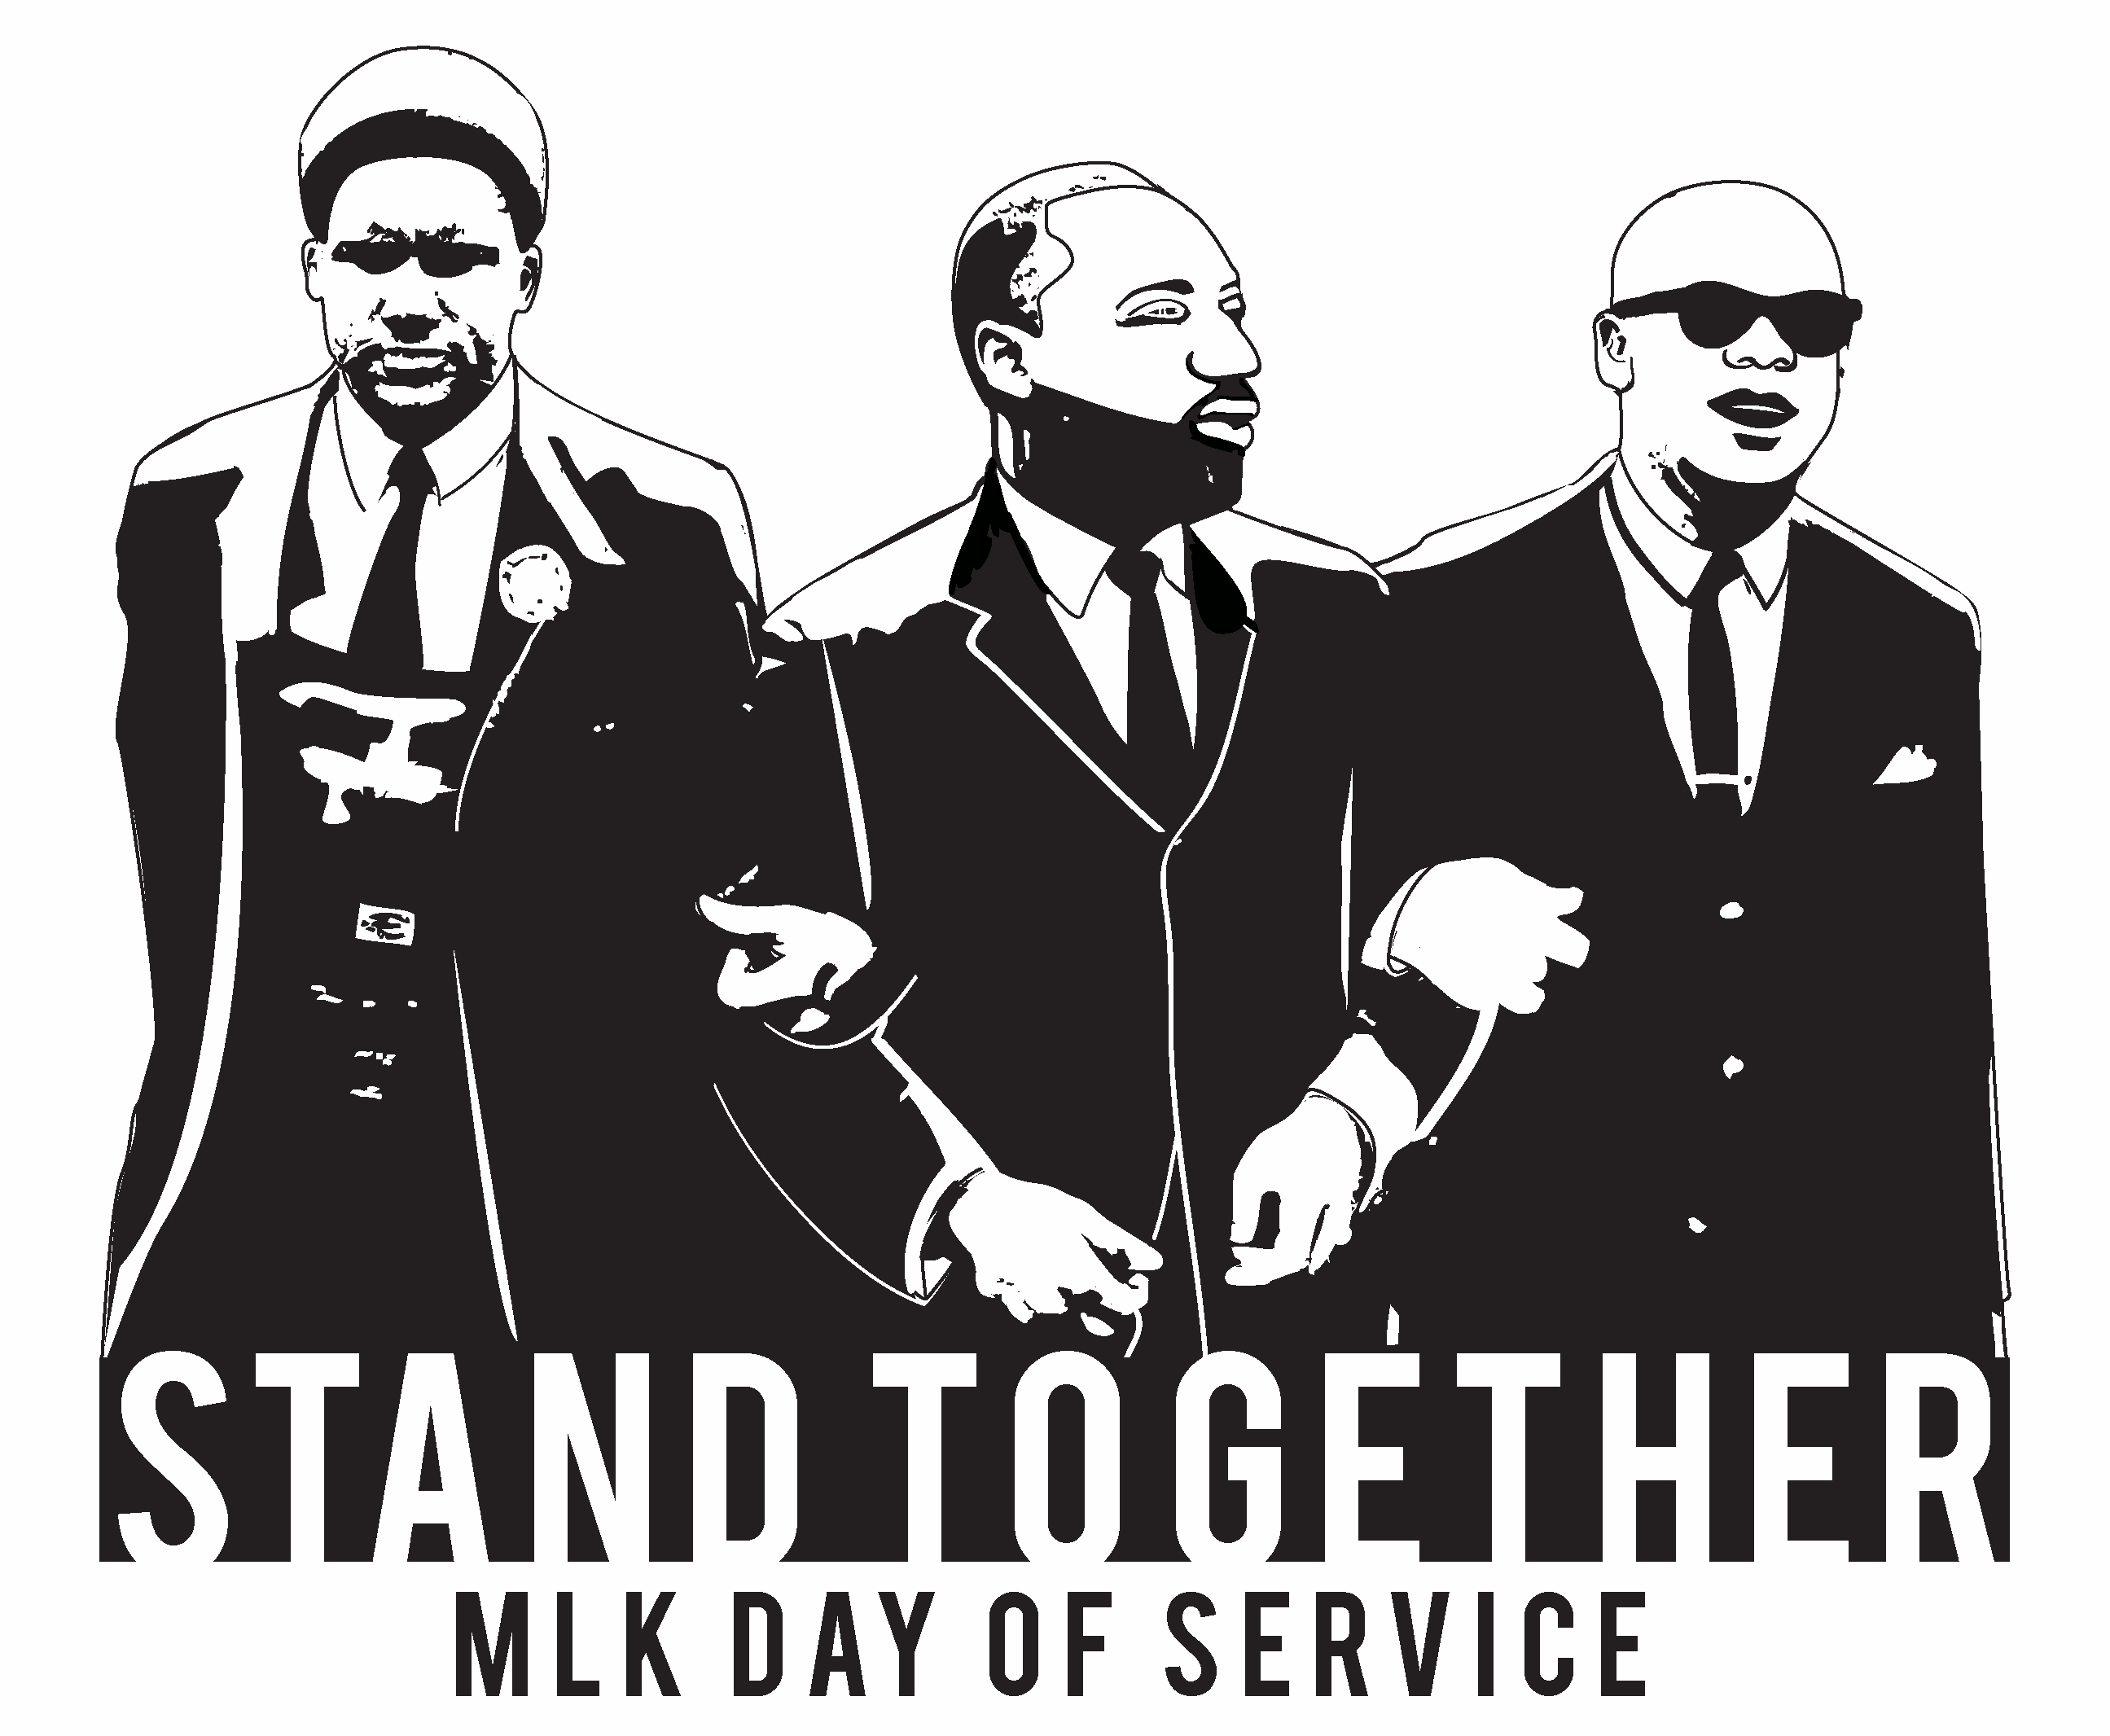 Register To Volunteer With PCC For MLK